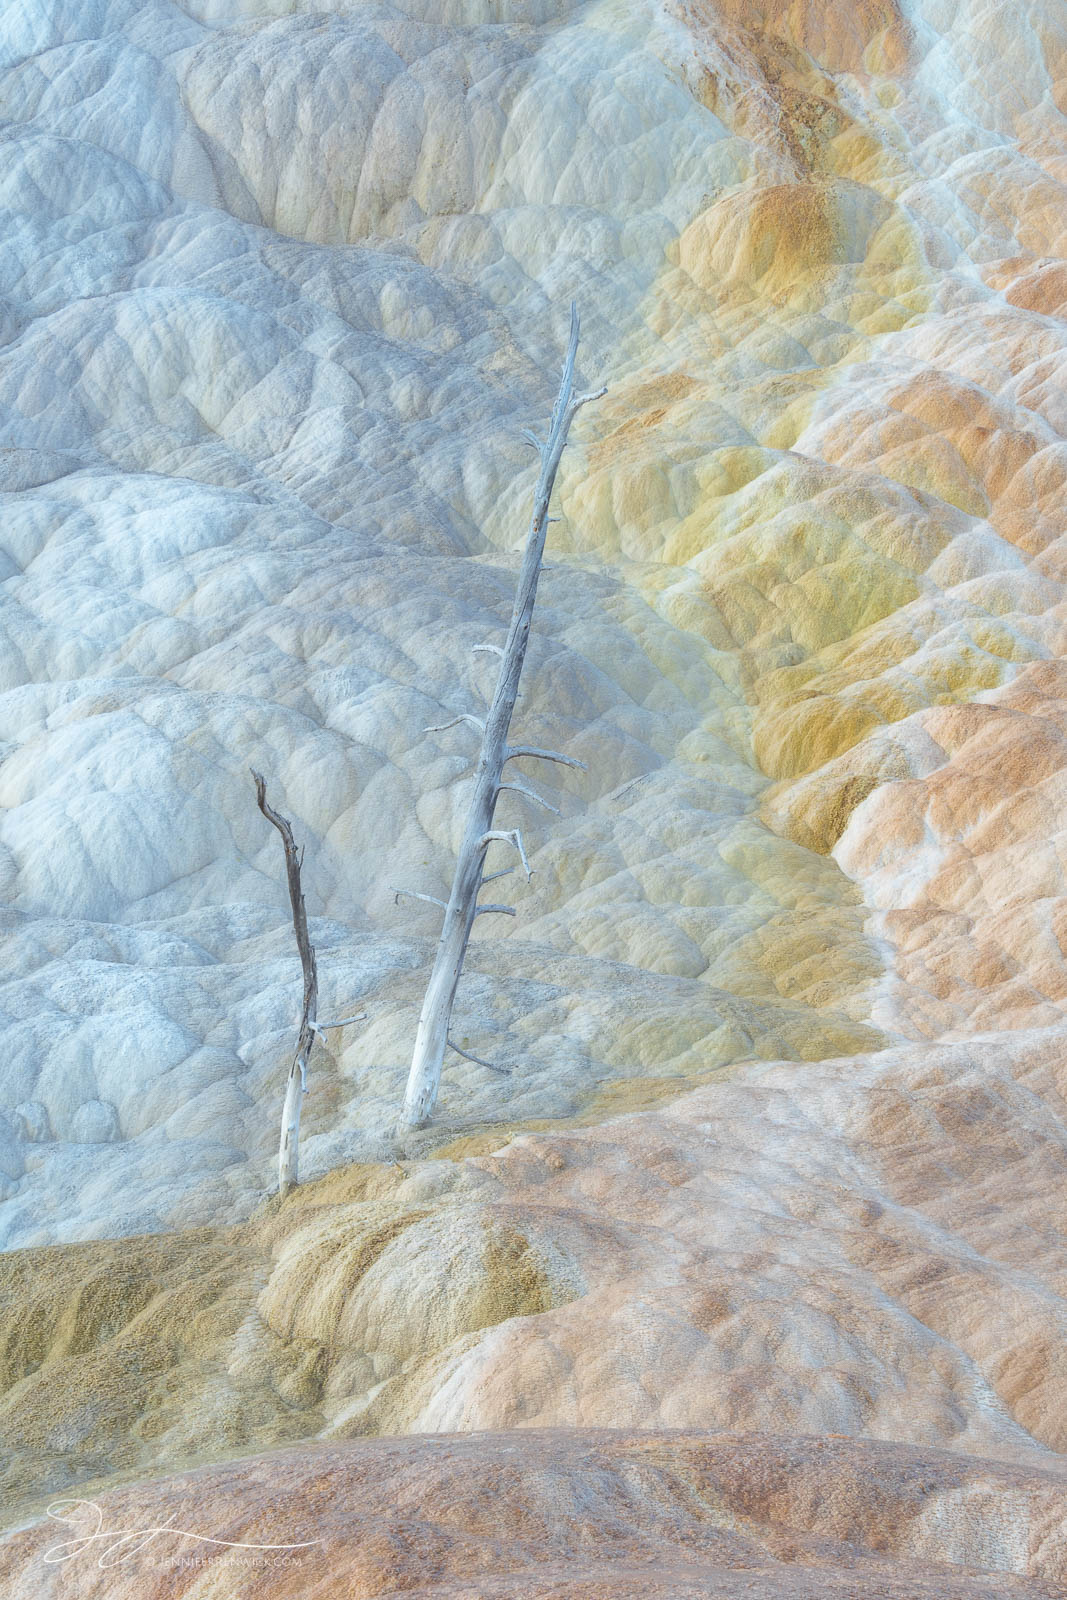 A dead tree stands among the colorful pastel terraces of Mammoth Hot Springs.